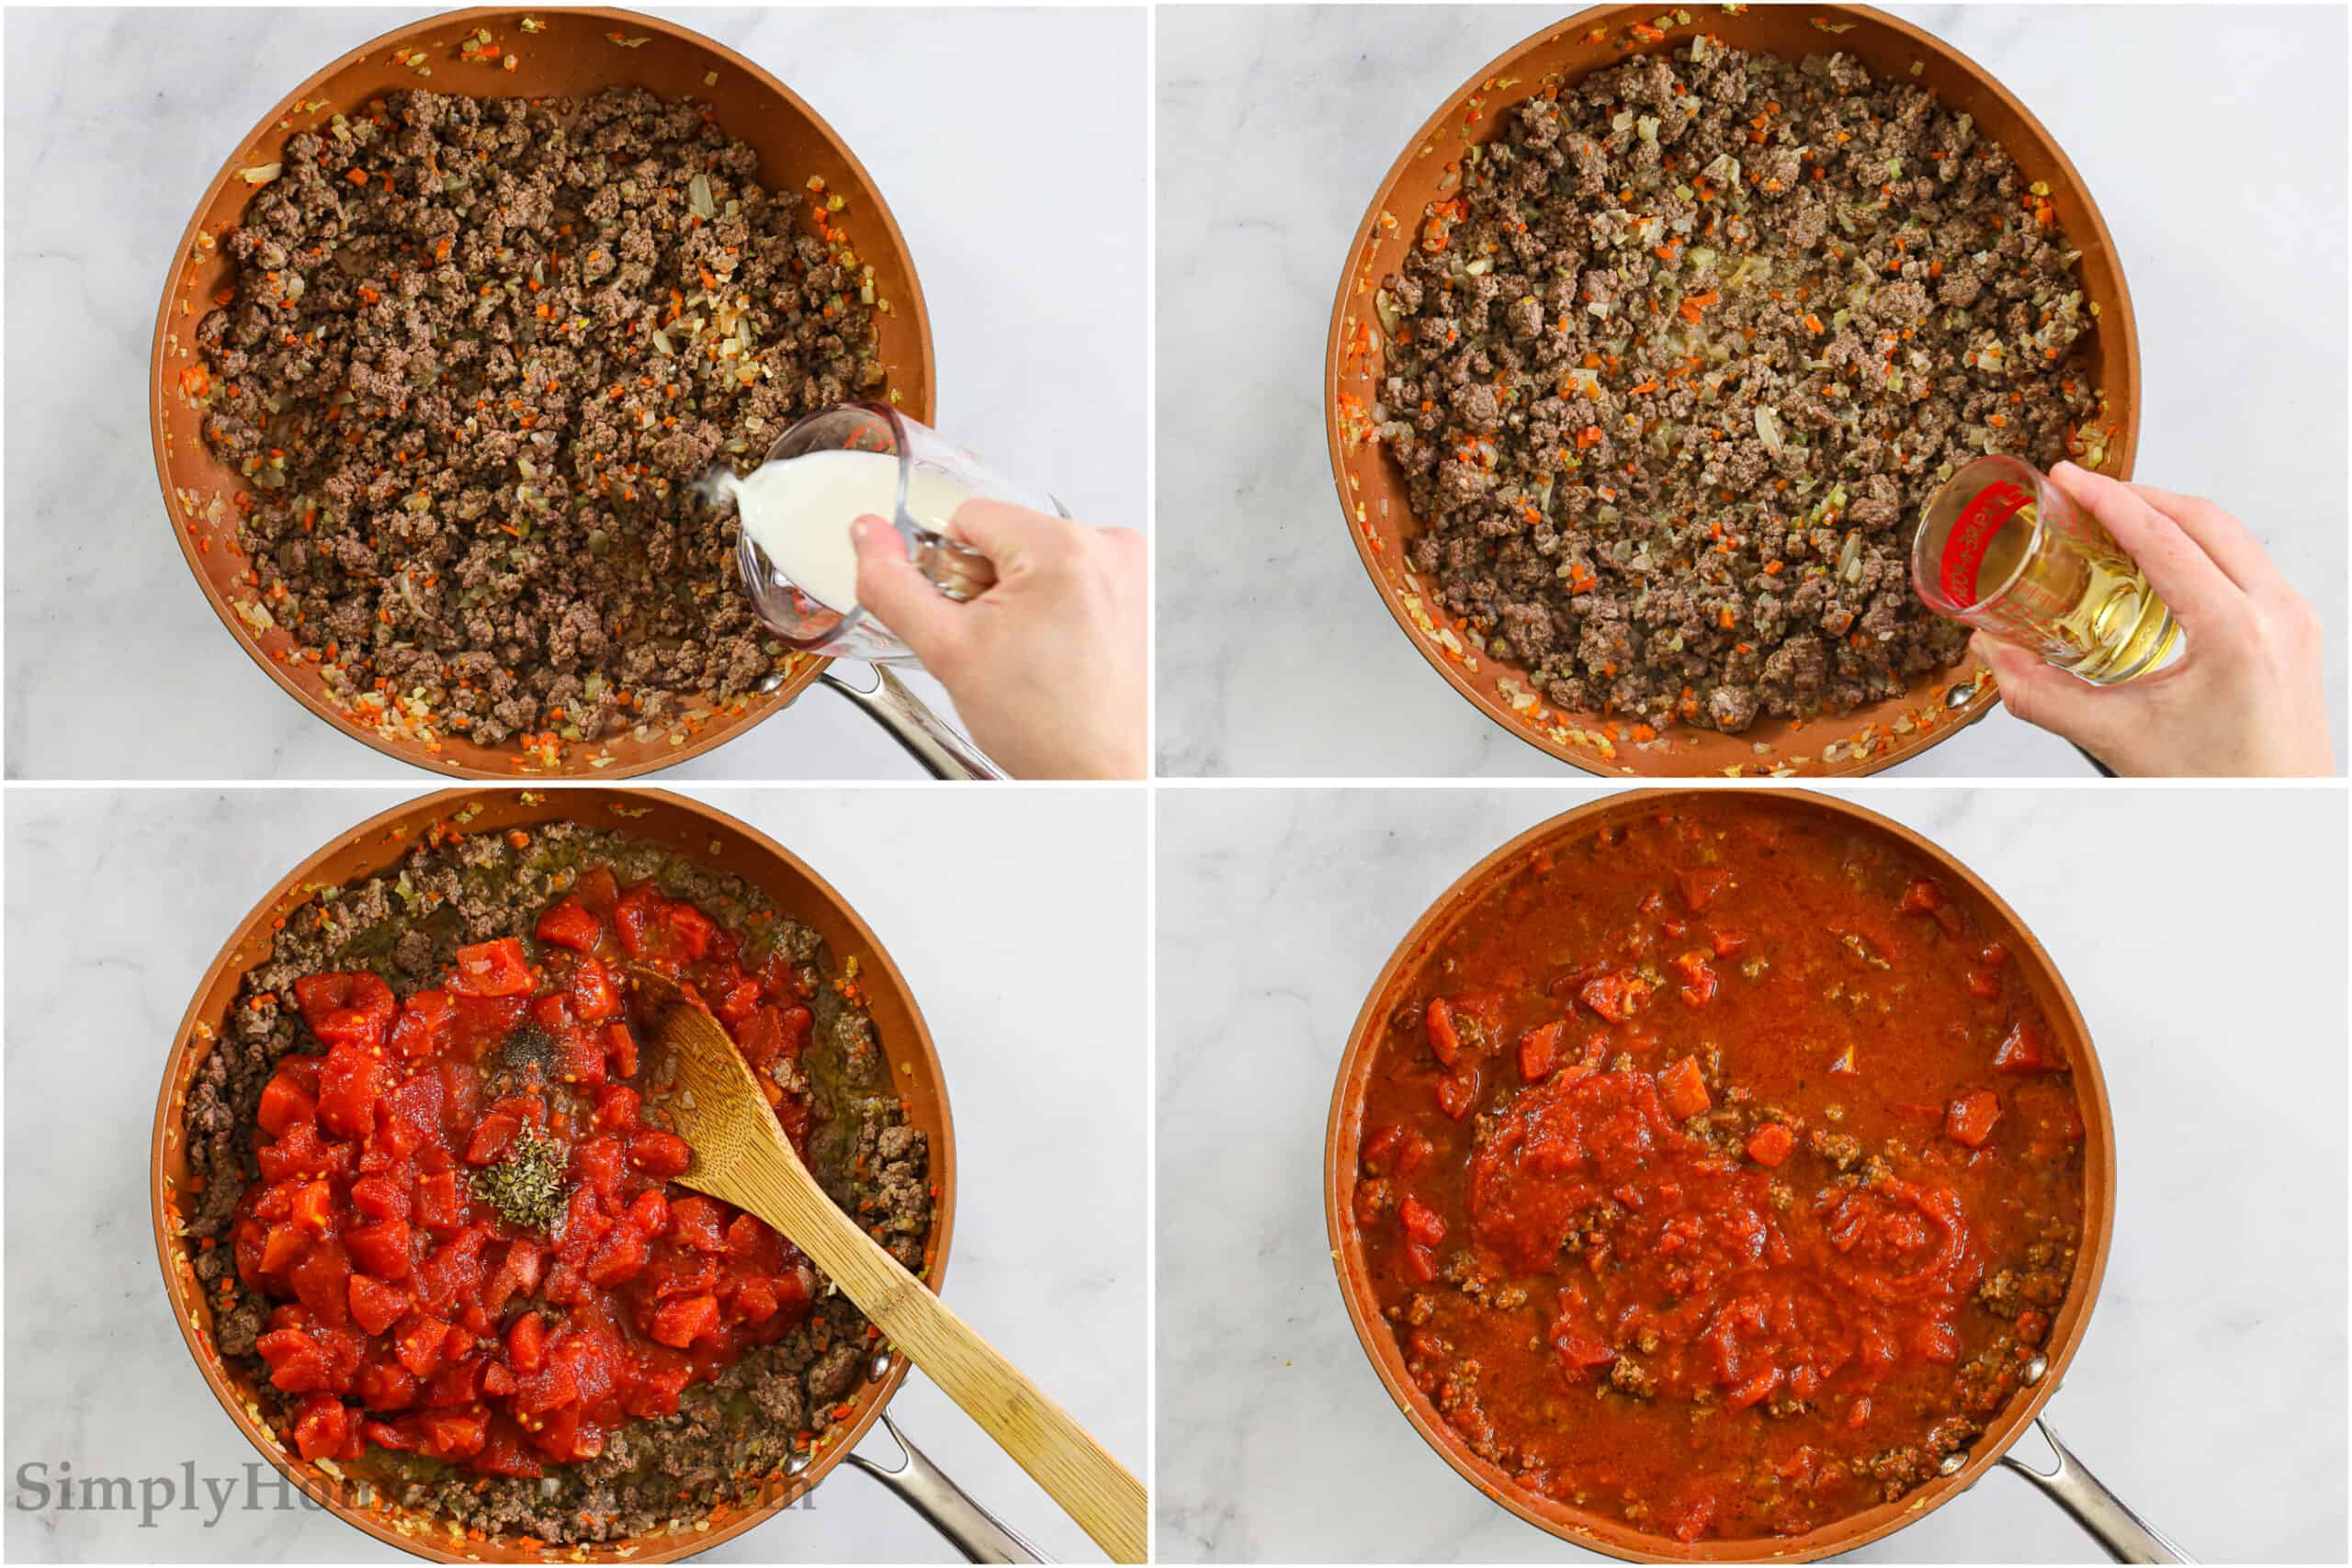 Steps for making Rigatoni Bolognese, including adding milk and white wine to the ground beef mixture, then adding the tomatoes and seasonings, and stirring it all together.